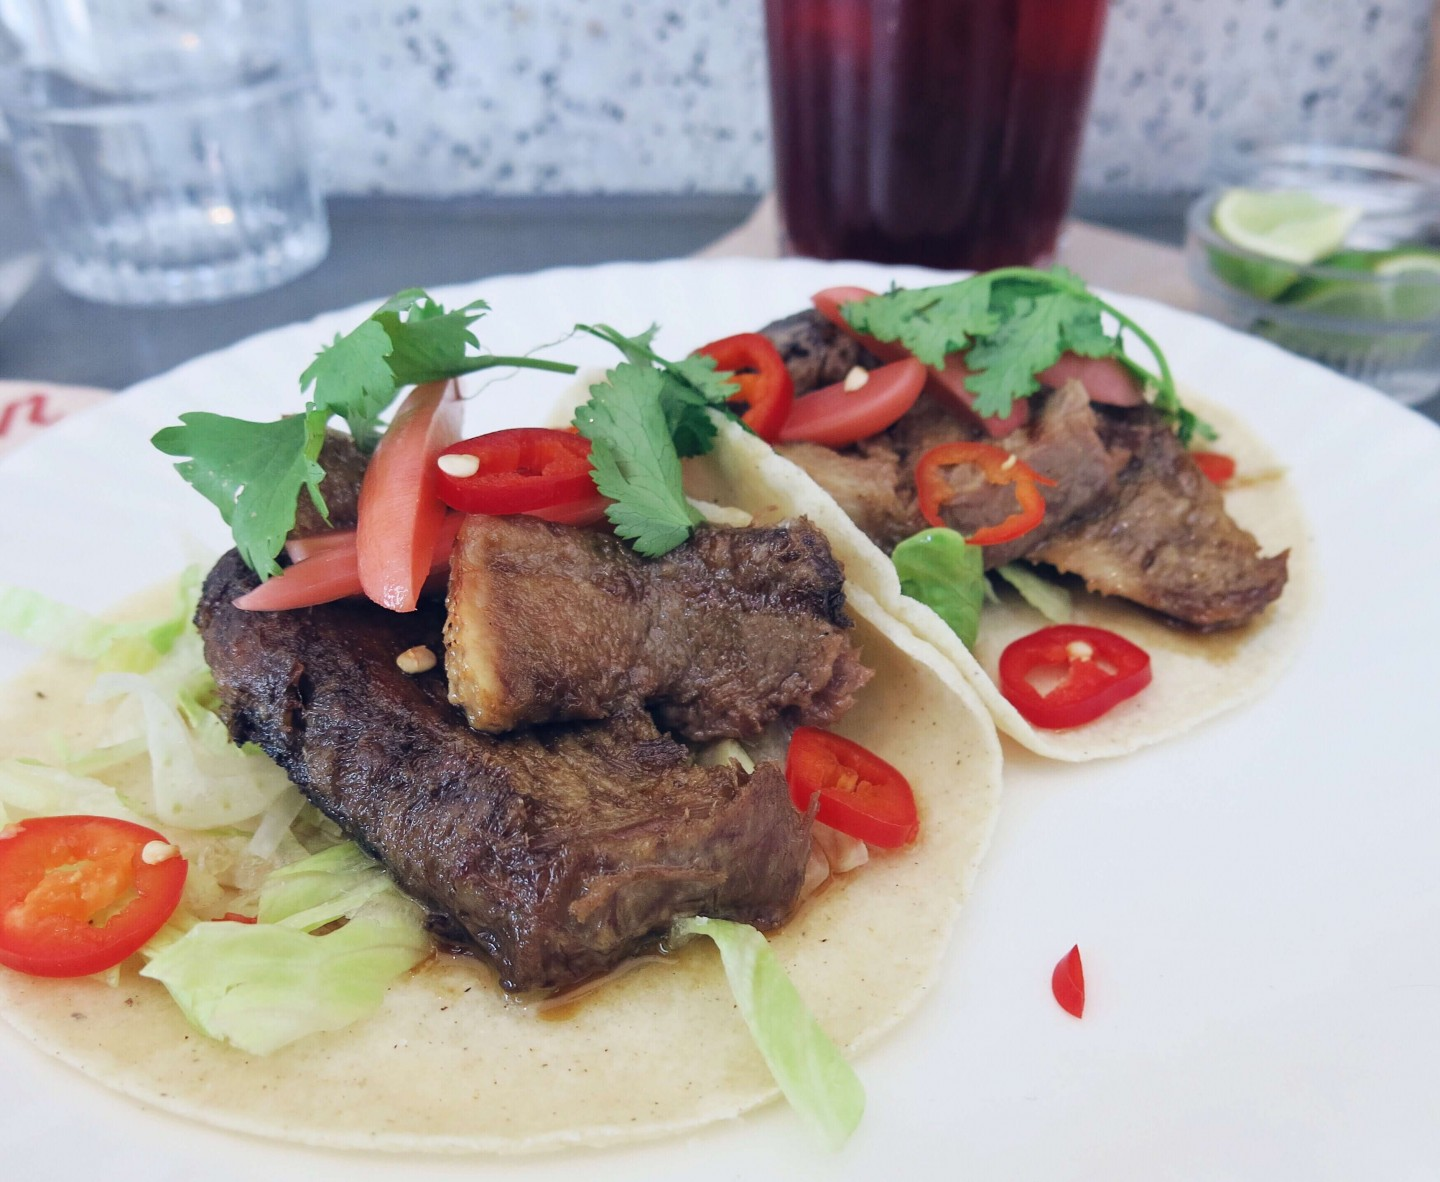 The 12 hour braized ox tongue tacos at Corazon in Soho, London. A great restaurant for lunch under £10.